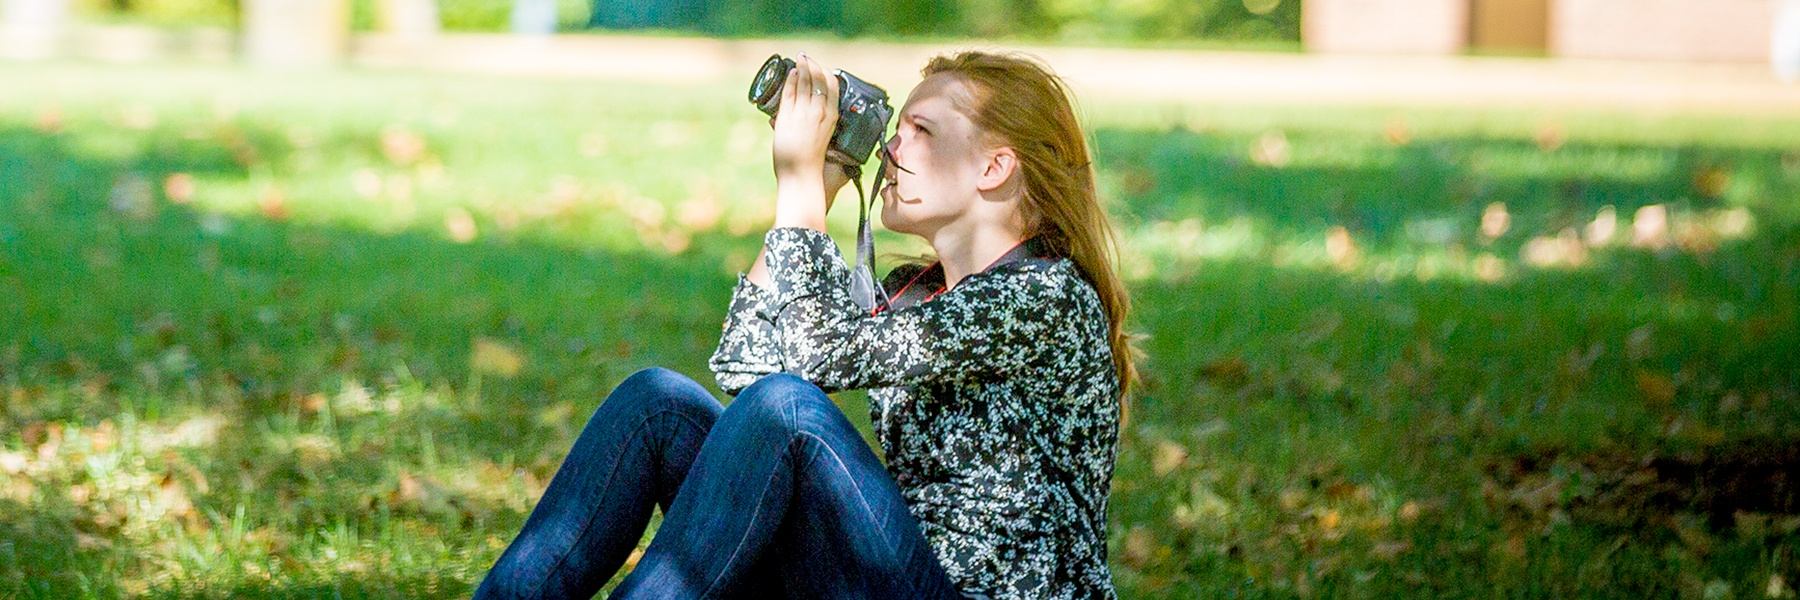 Student sitting on ground outside on a sunny day photographing into the trees.